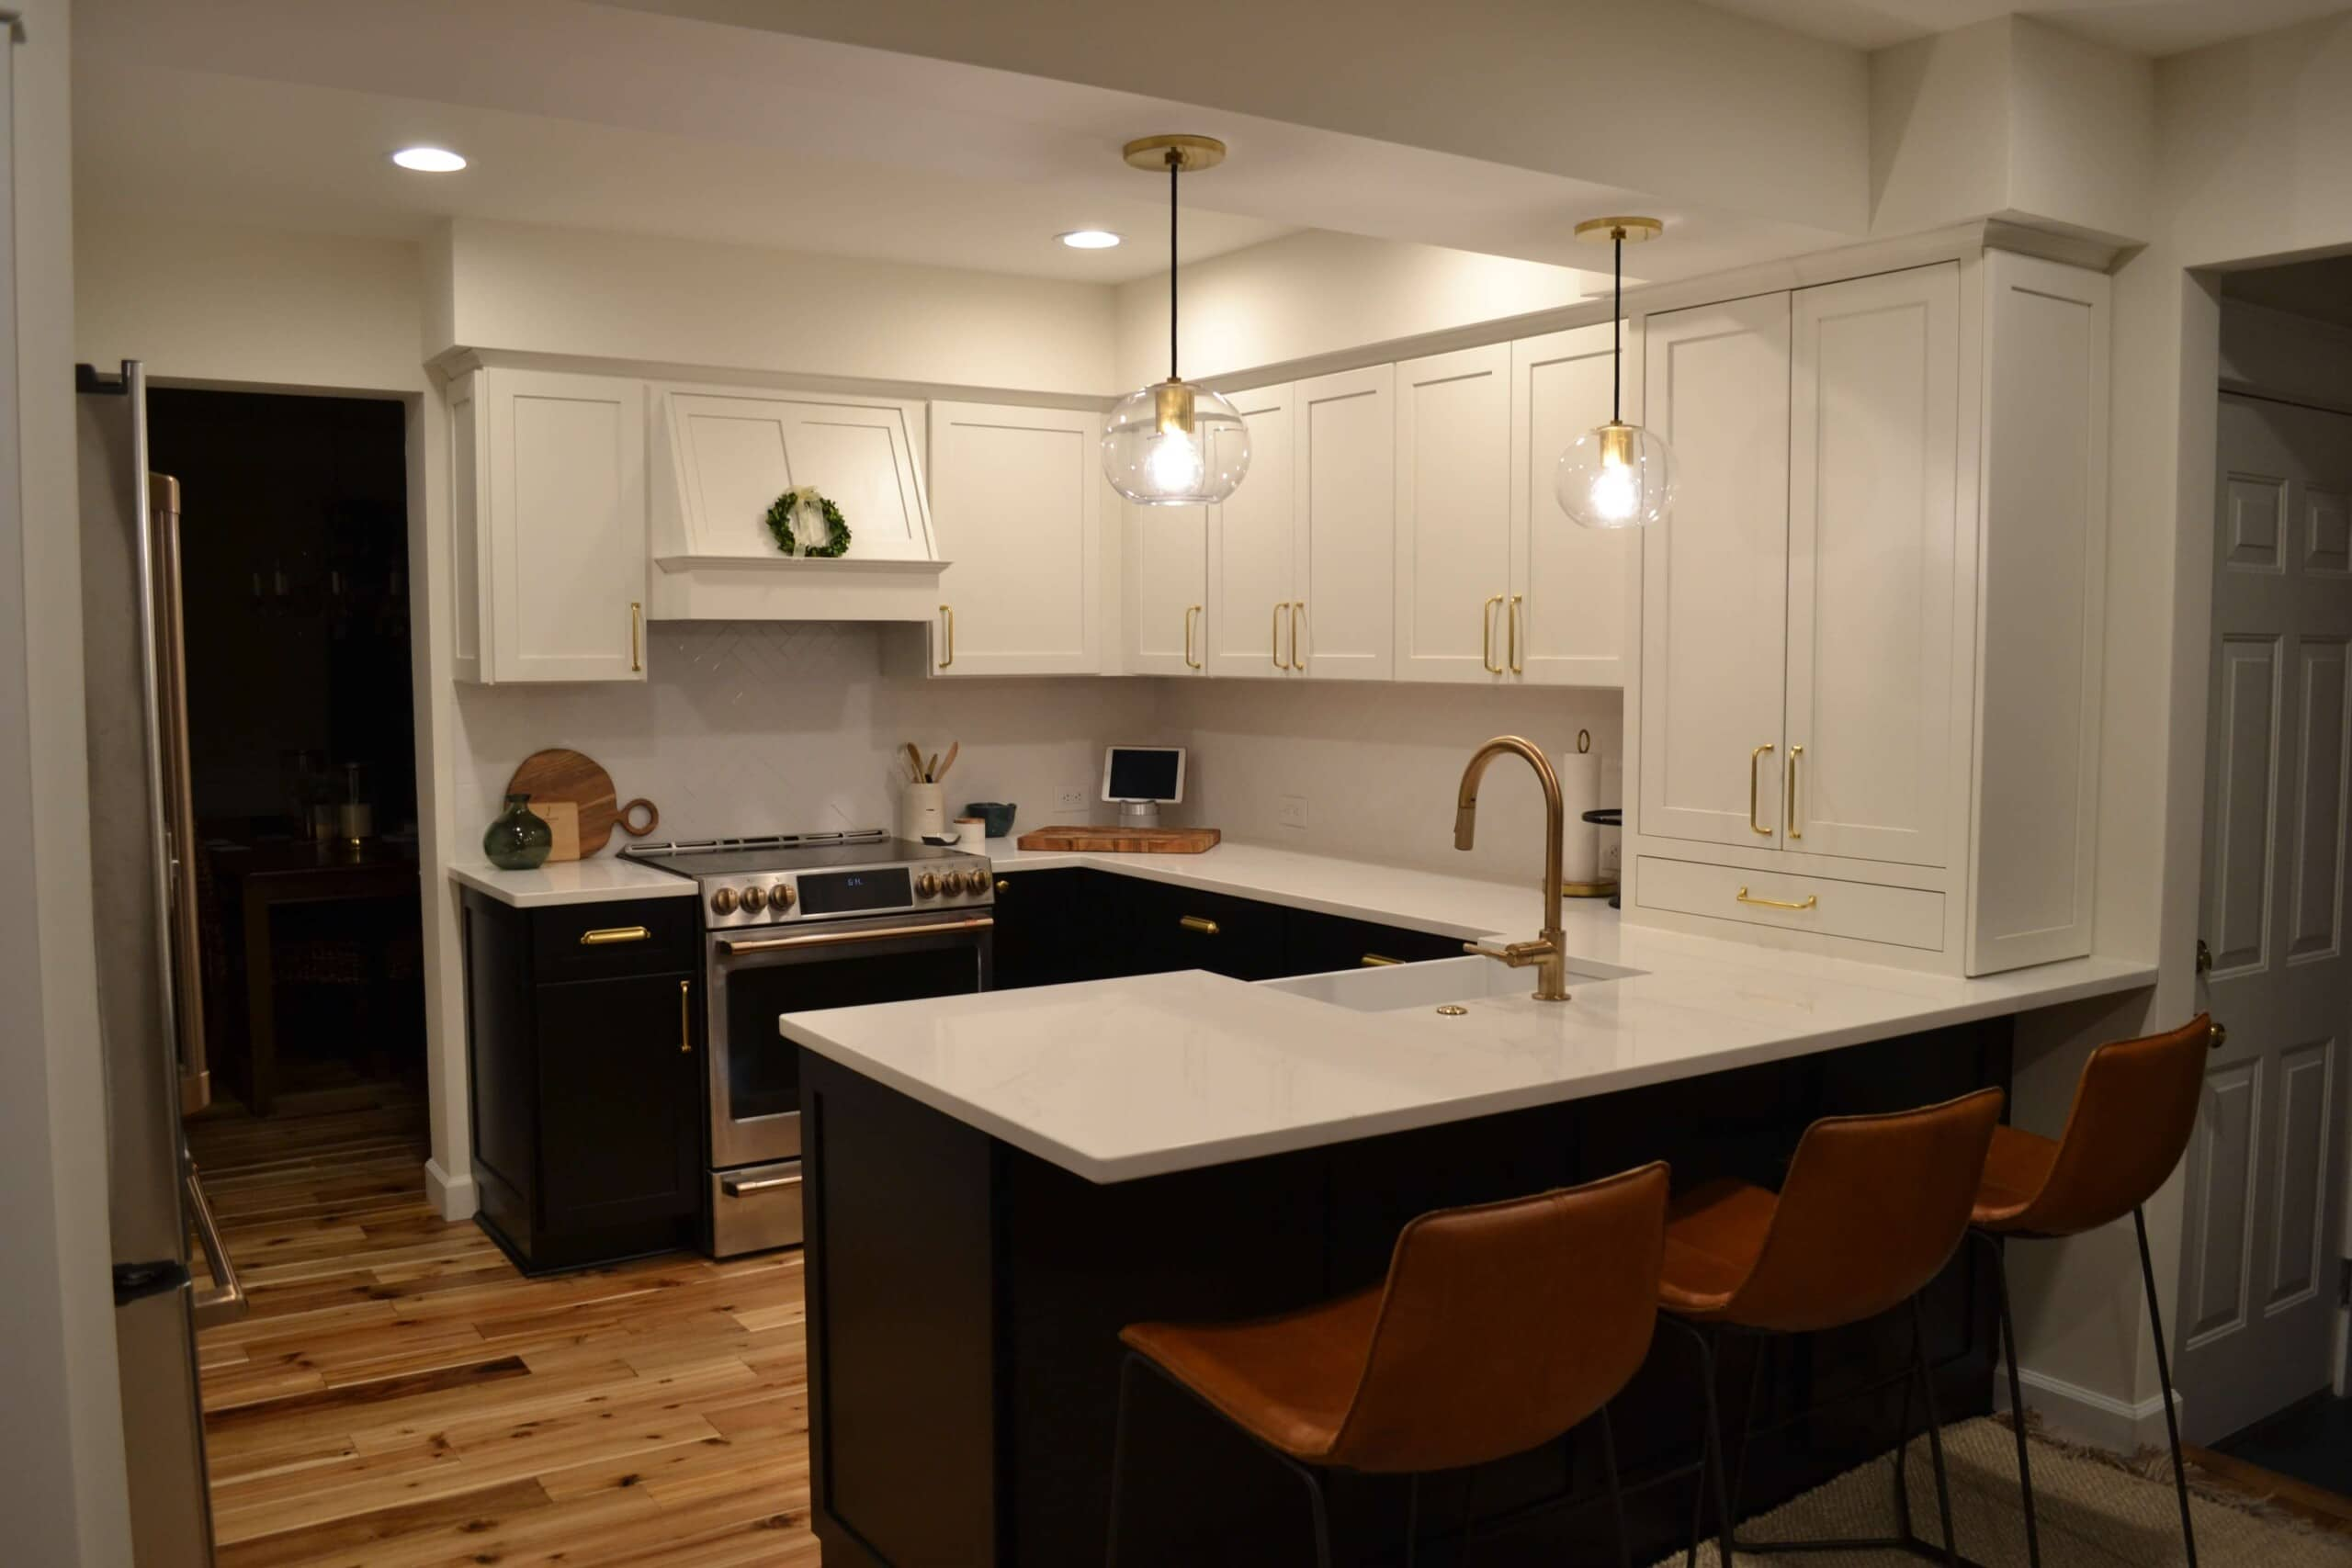 custom kitchen cabinets in a Fairless Hills